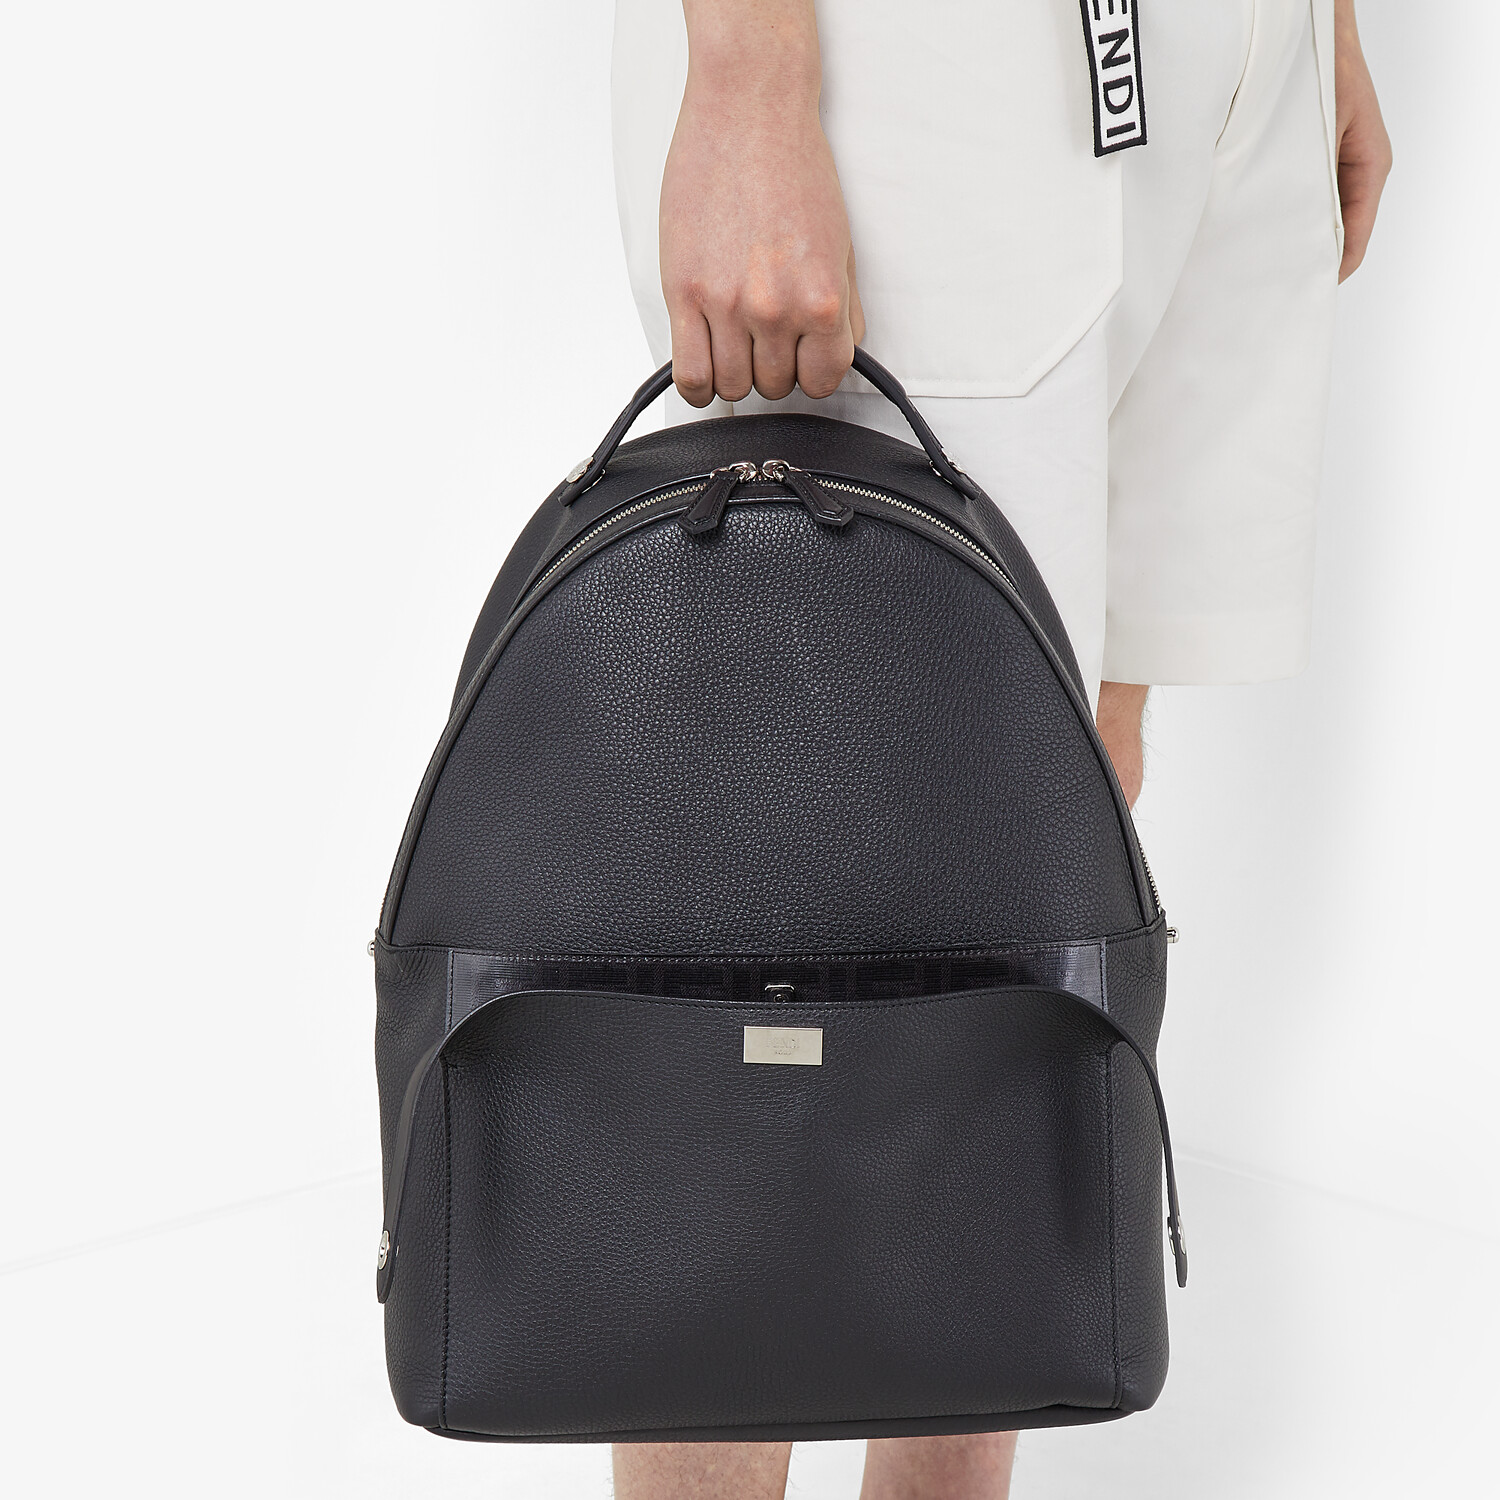 FENDI PEEKABOO BACKPACK - Black leather backpack - view 7 detail